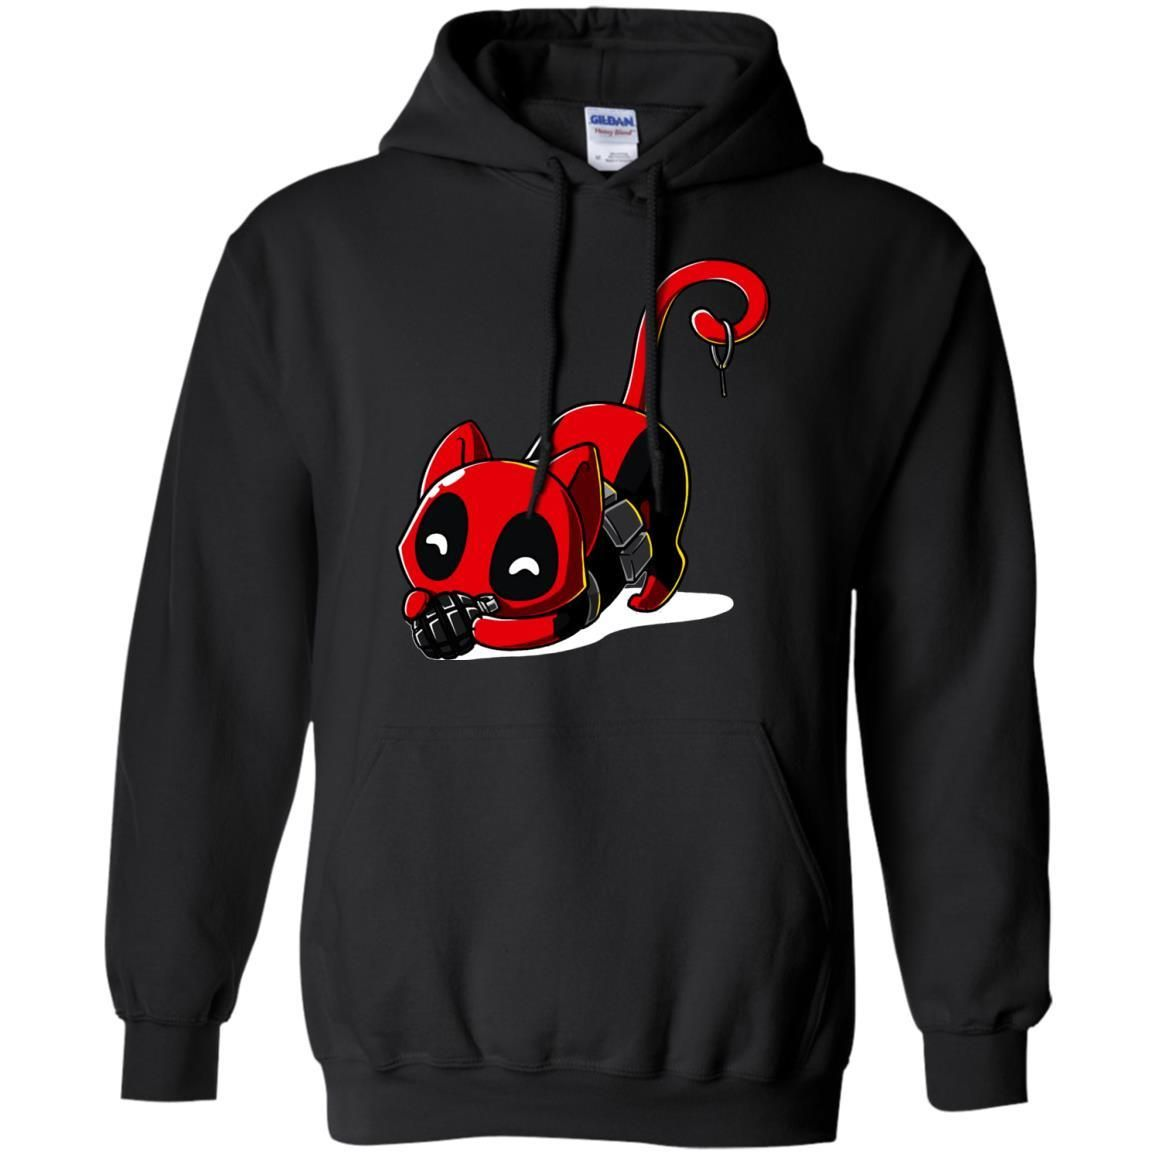 Deadpool Cat Hoodie Playing With Grenade Hoodies